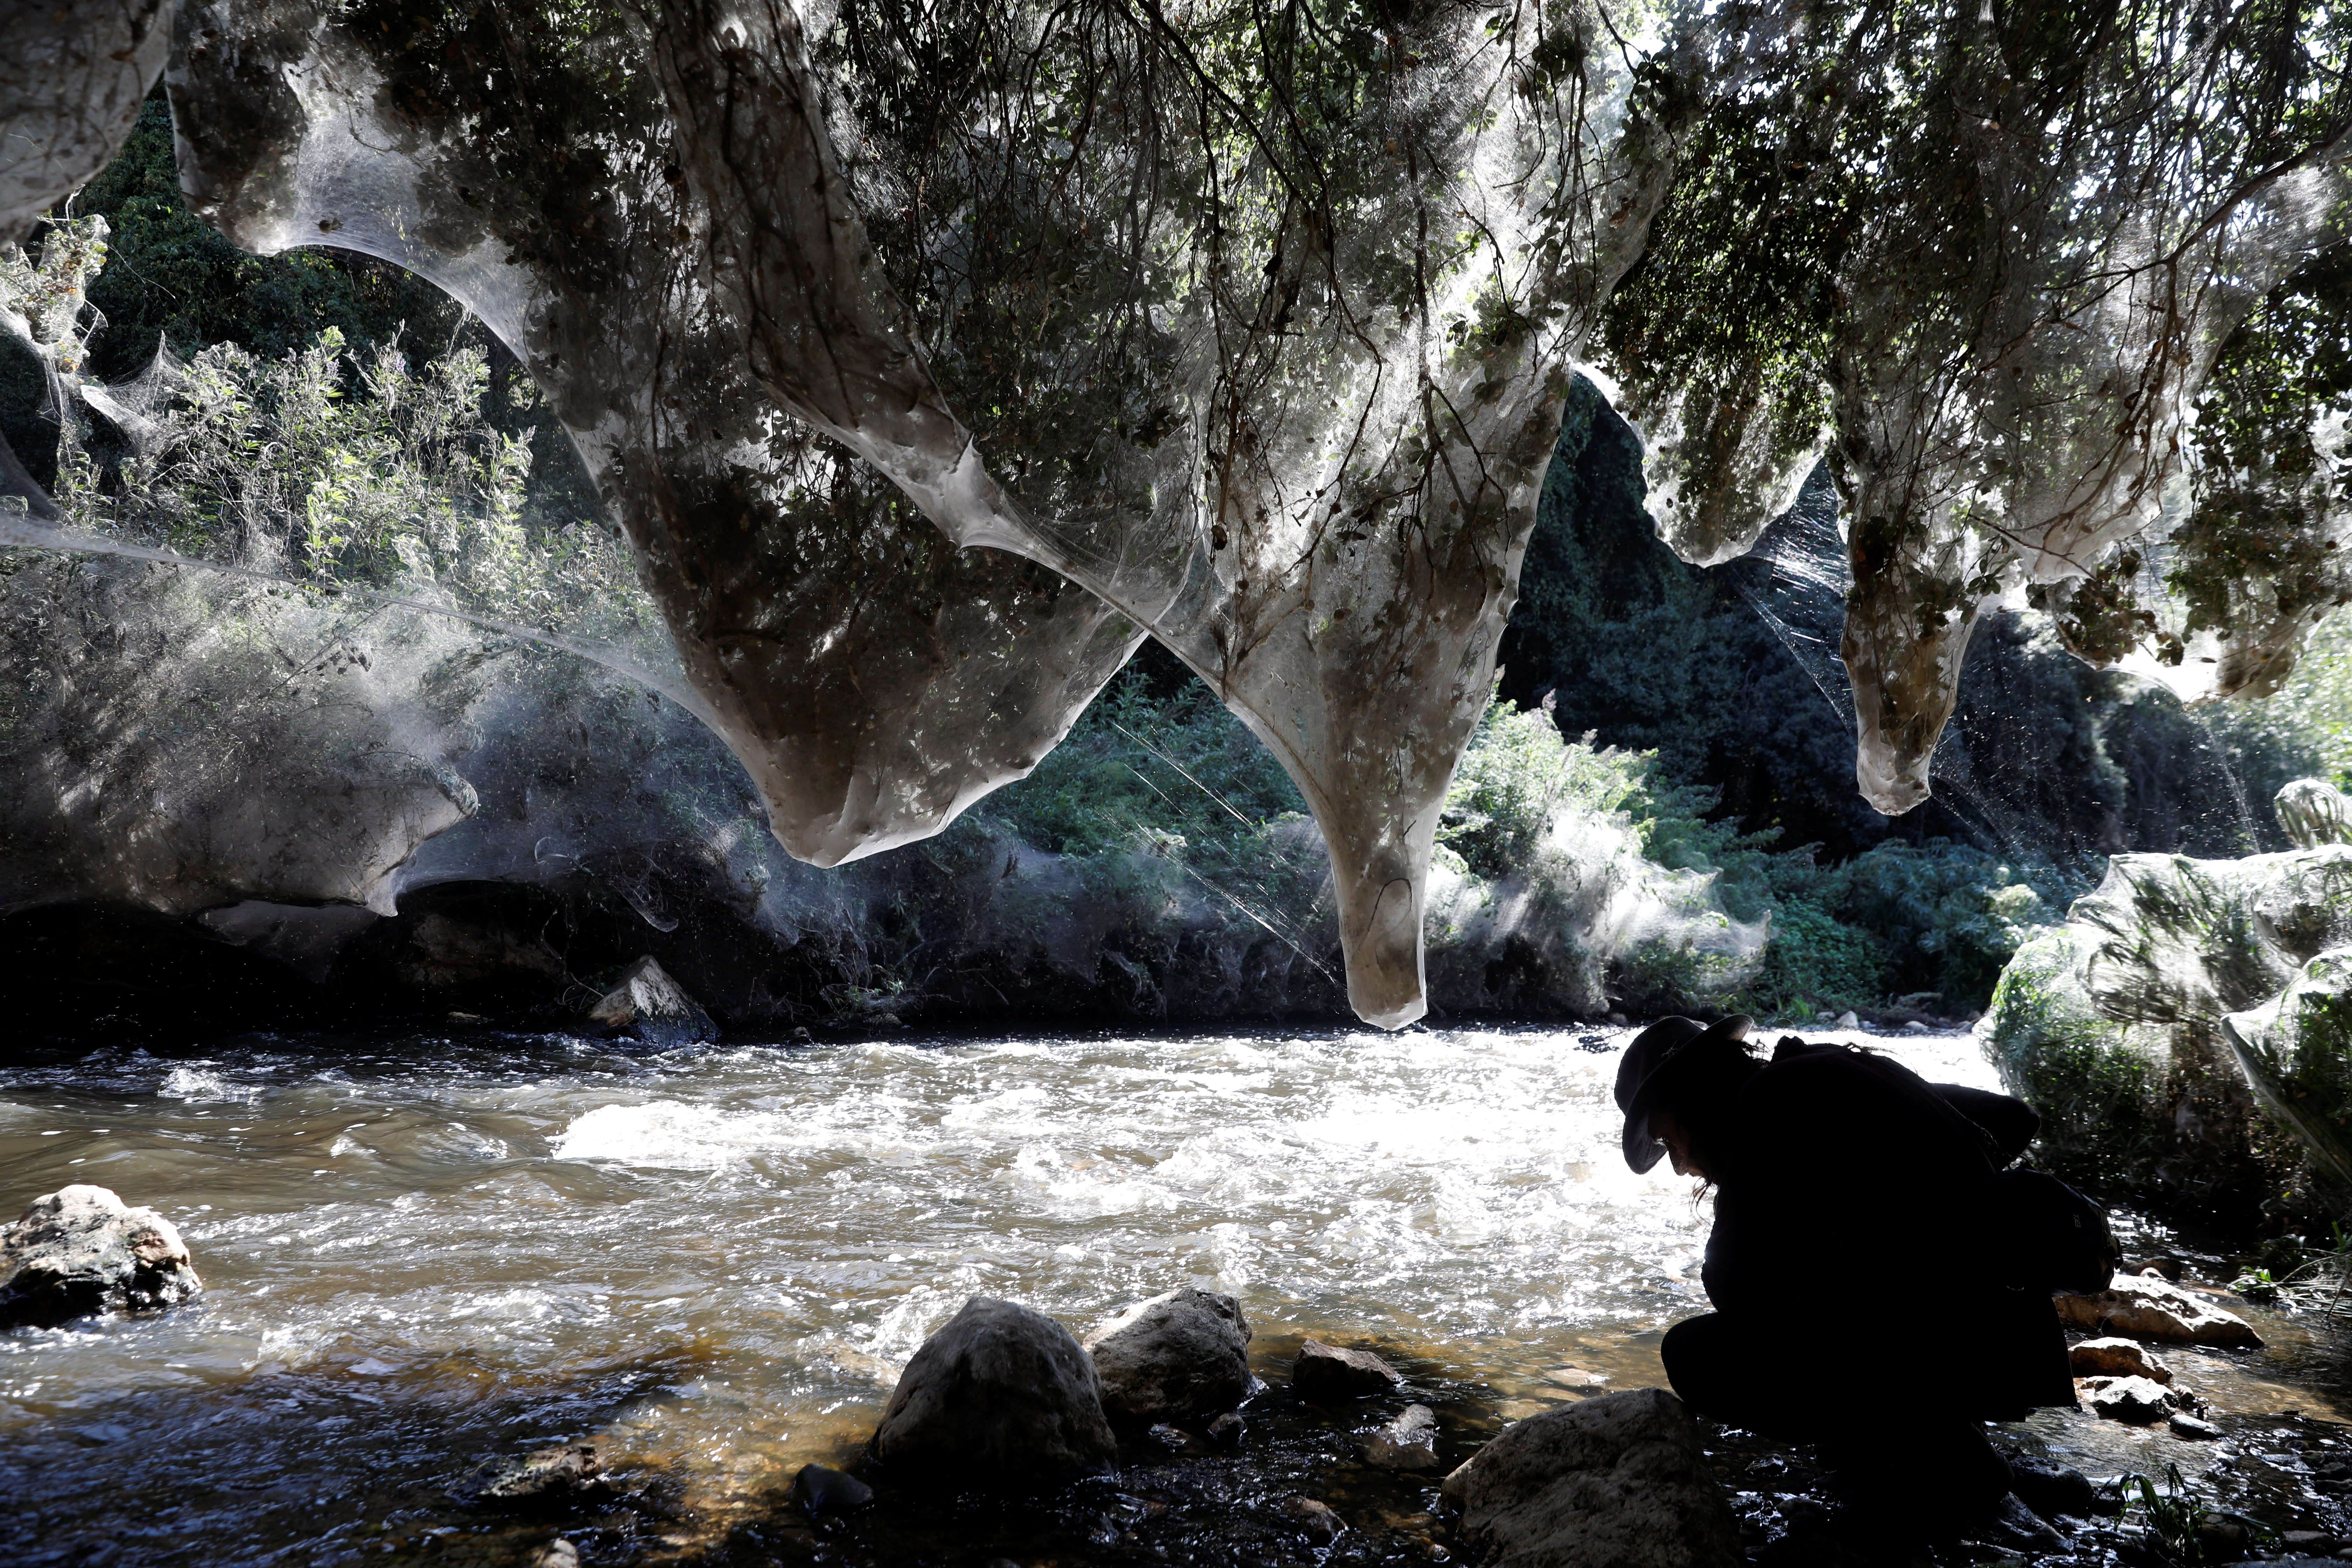 Igor Armicach, a doctoral student at Hebrew University's Arachnid Collection, looks onto giant spider webs, spun by long-jawed spiders (Tetragnatha), along the Soreq creek bank, near Jerusalem November 7, 2017. (Reuters/Ronen Zvulun)